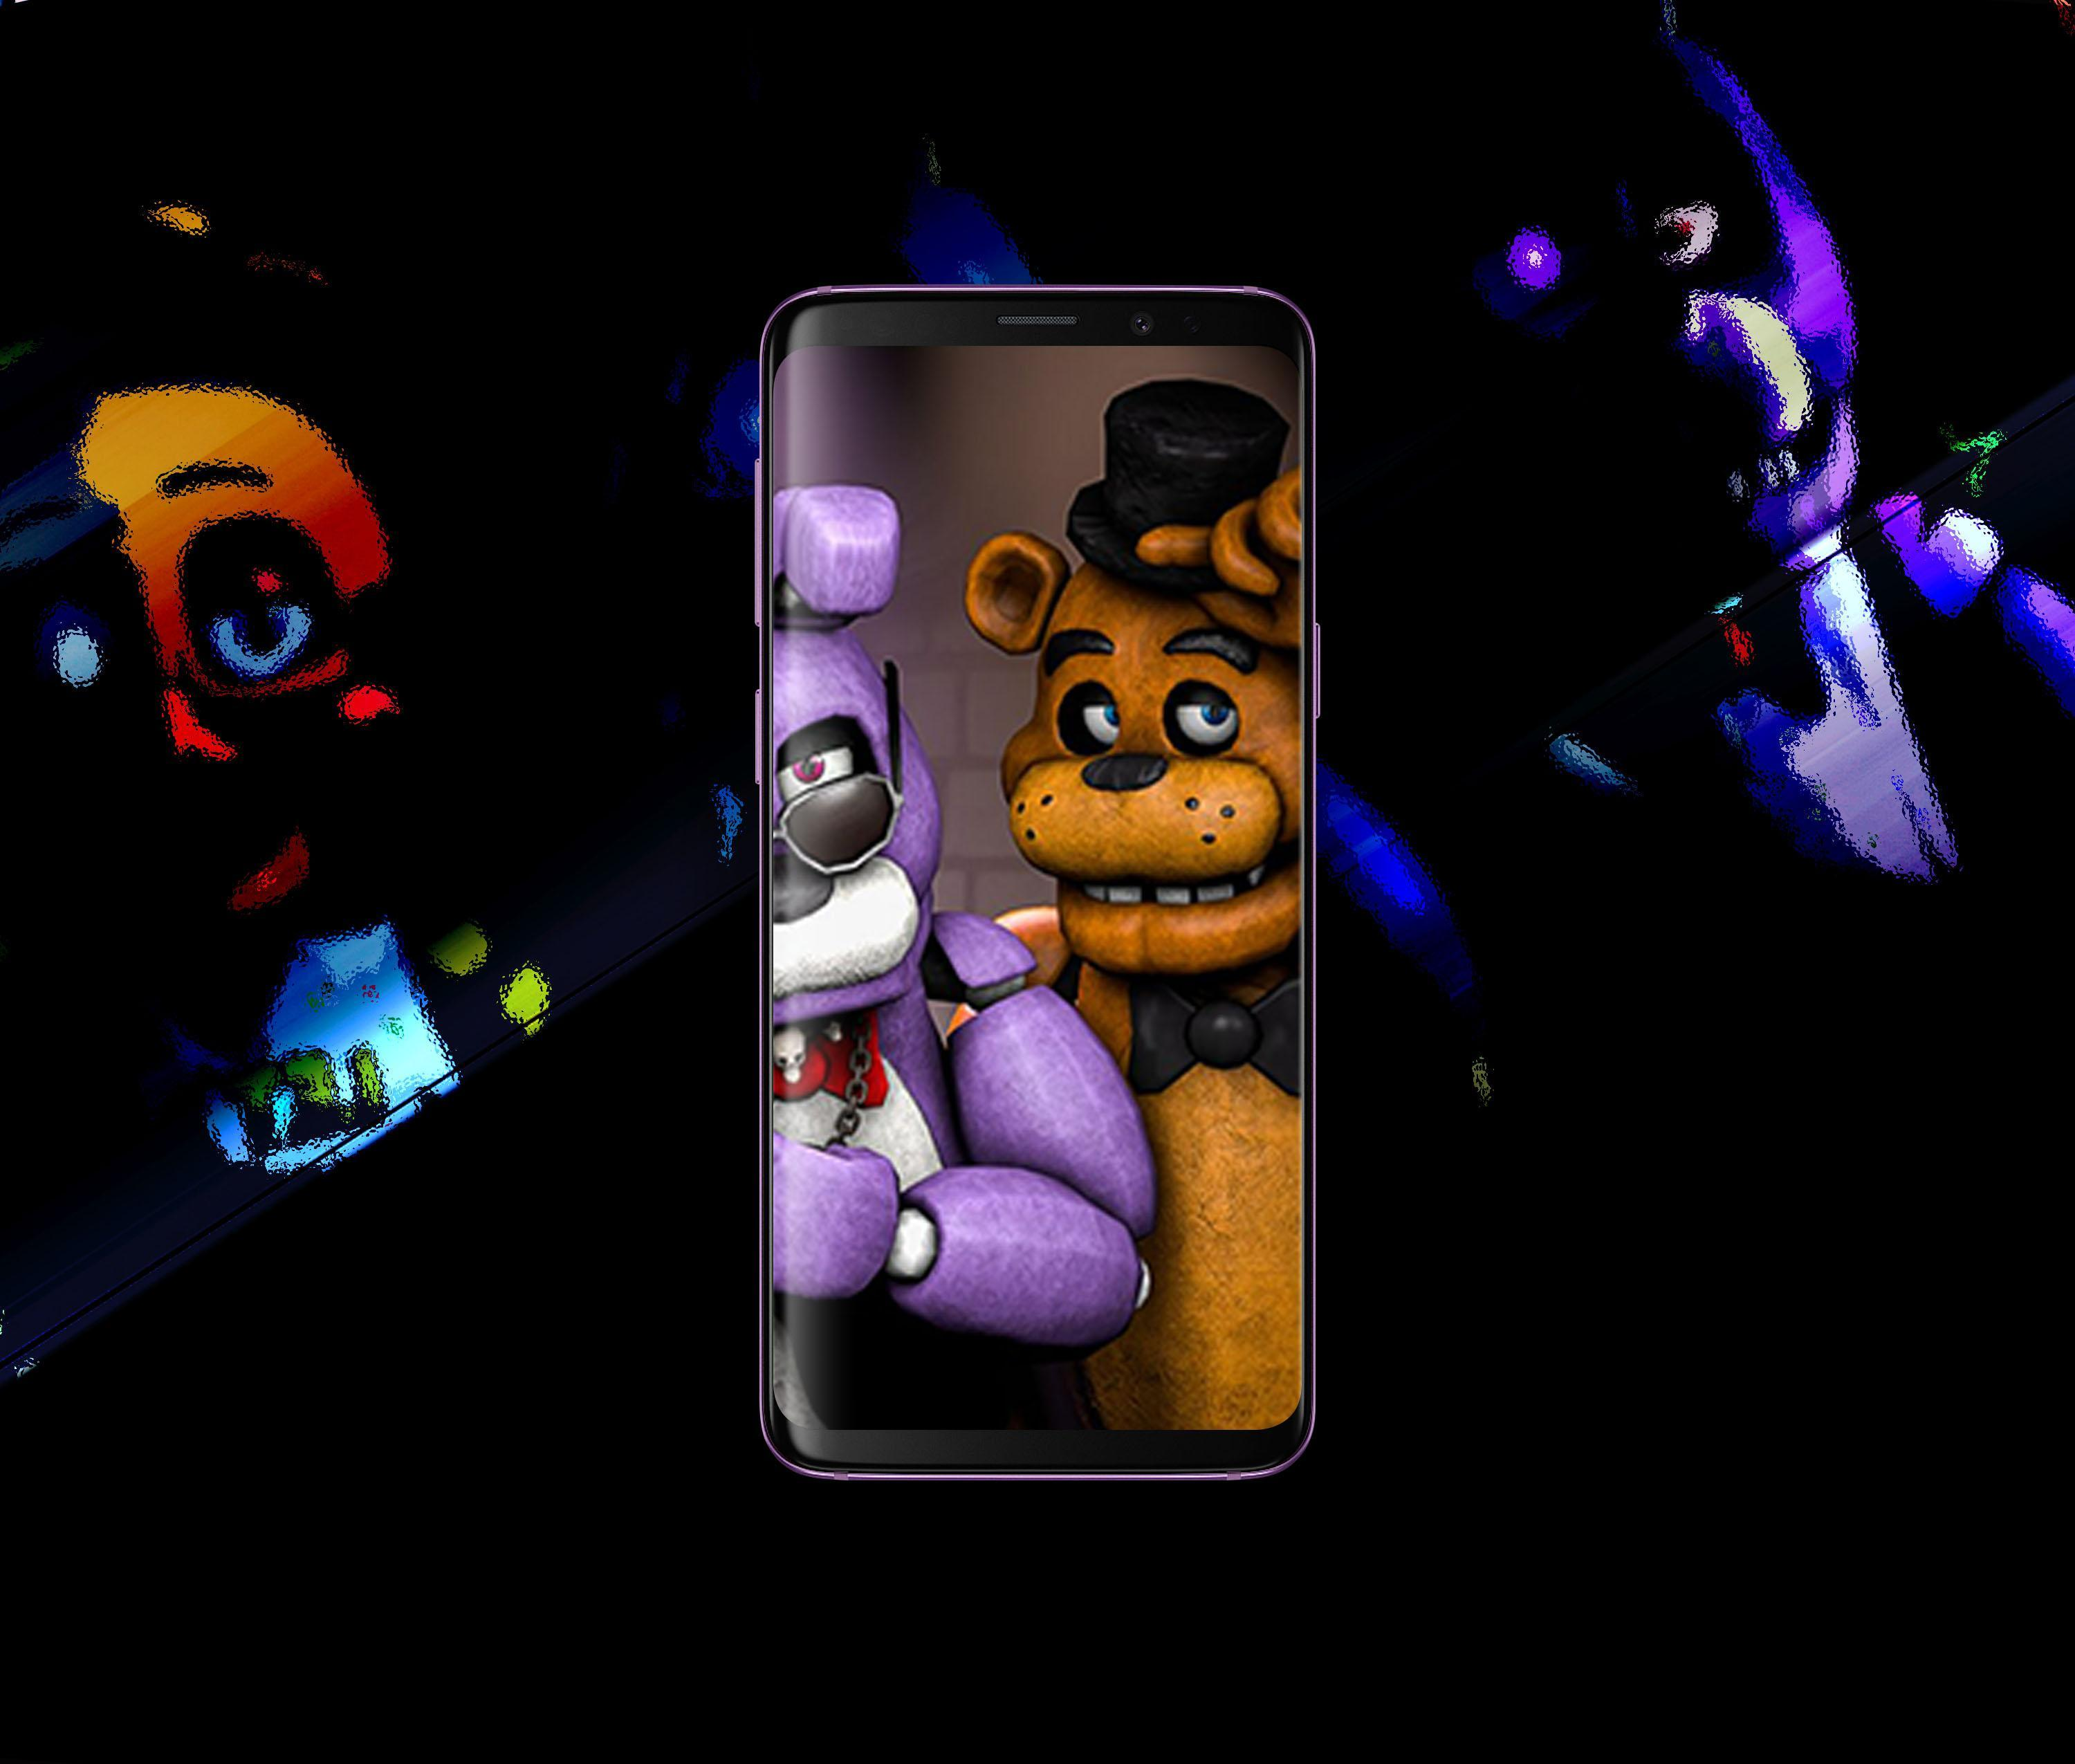 Fnaf Wallpapers Hd For Android Apk Download